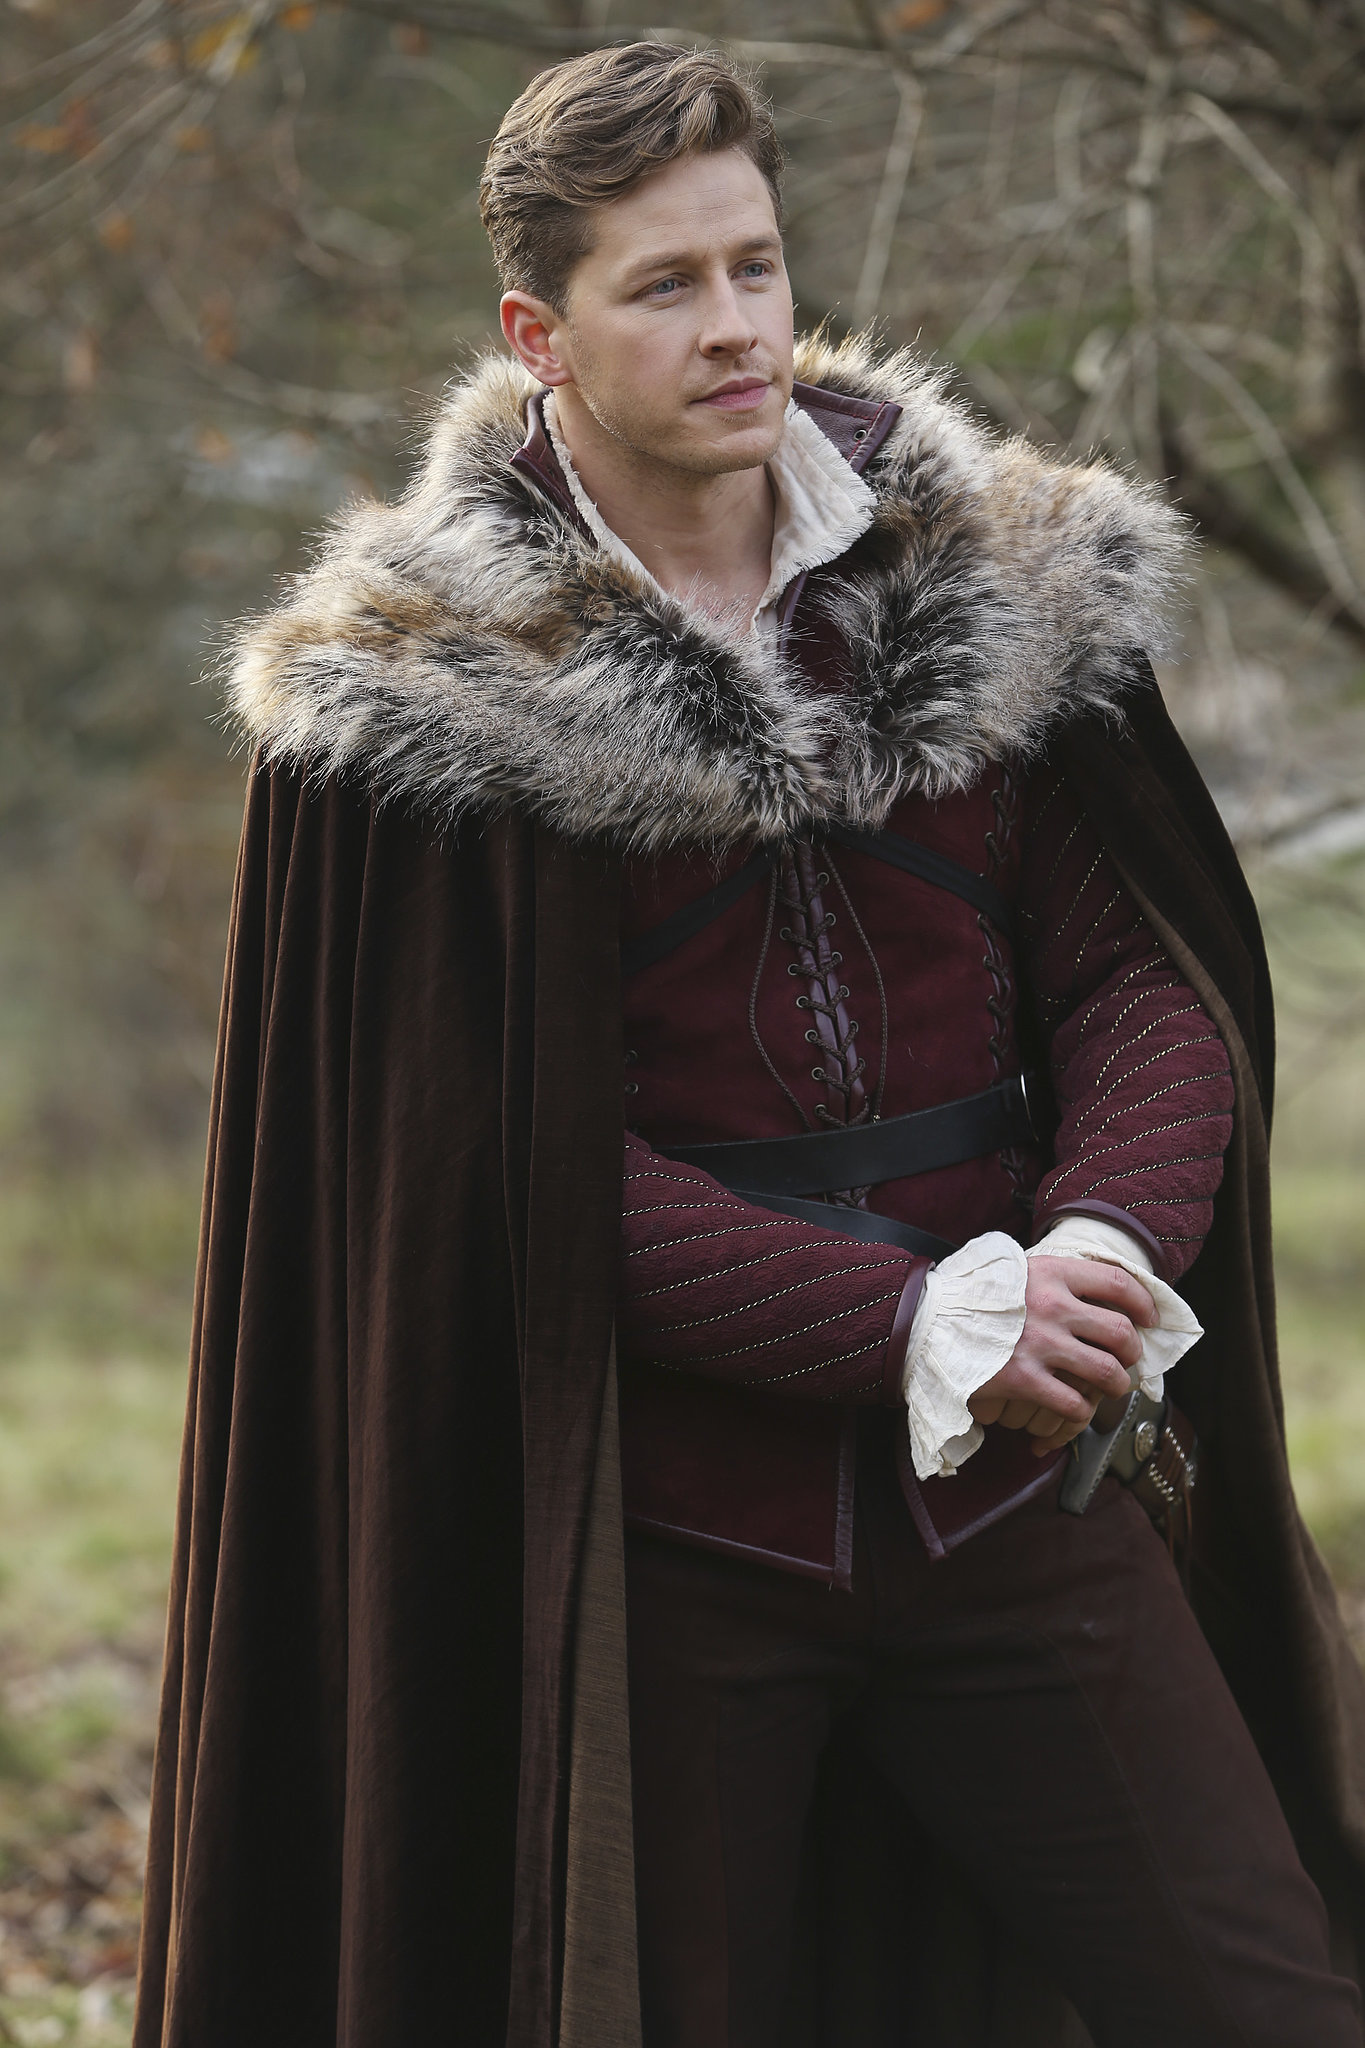 And Charming looks like his.